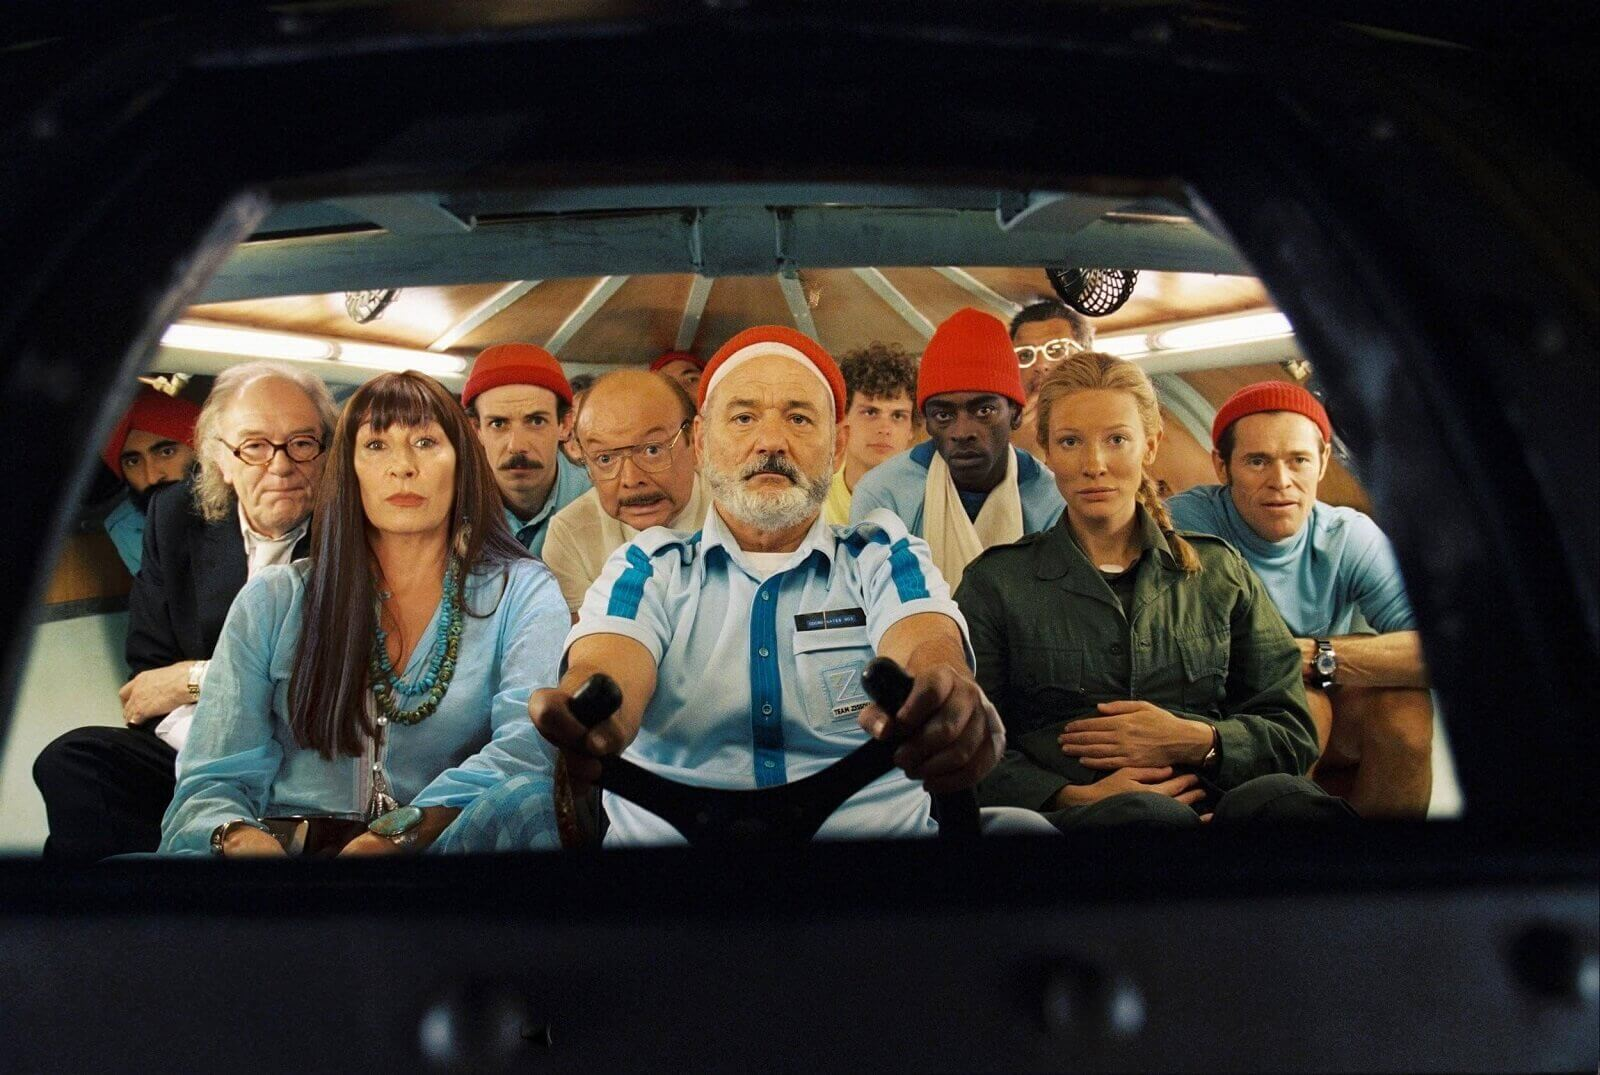 Wes Anderson Color Palette - Wes Anderson Colour Grading on Life Aquatic